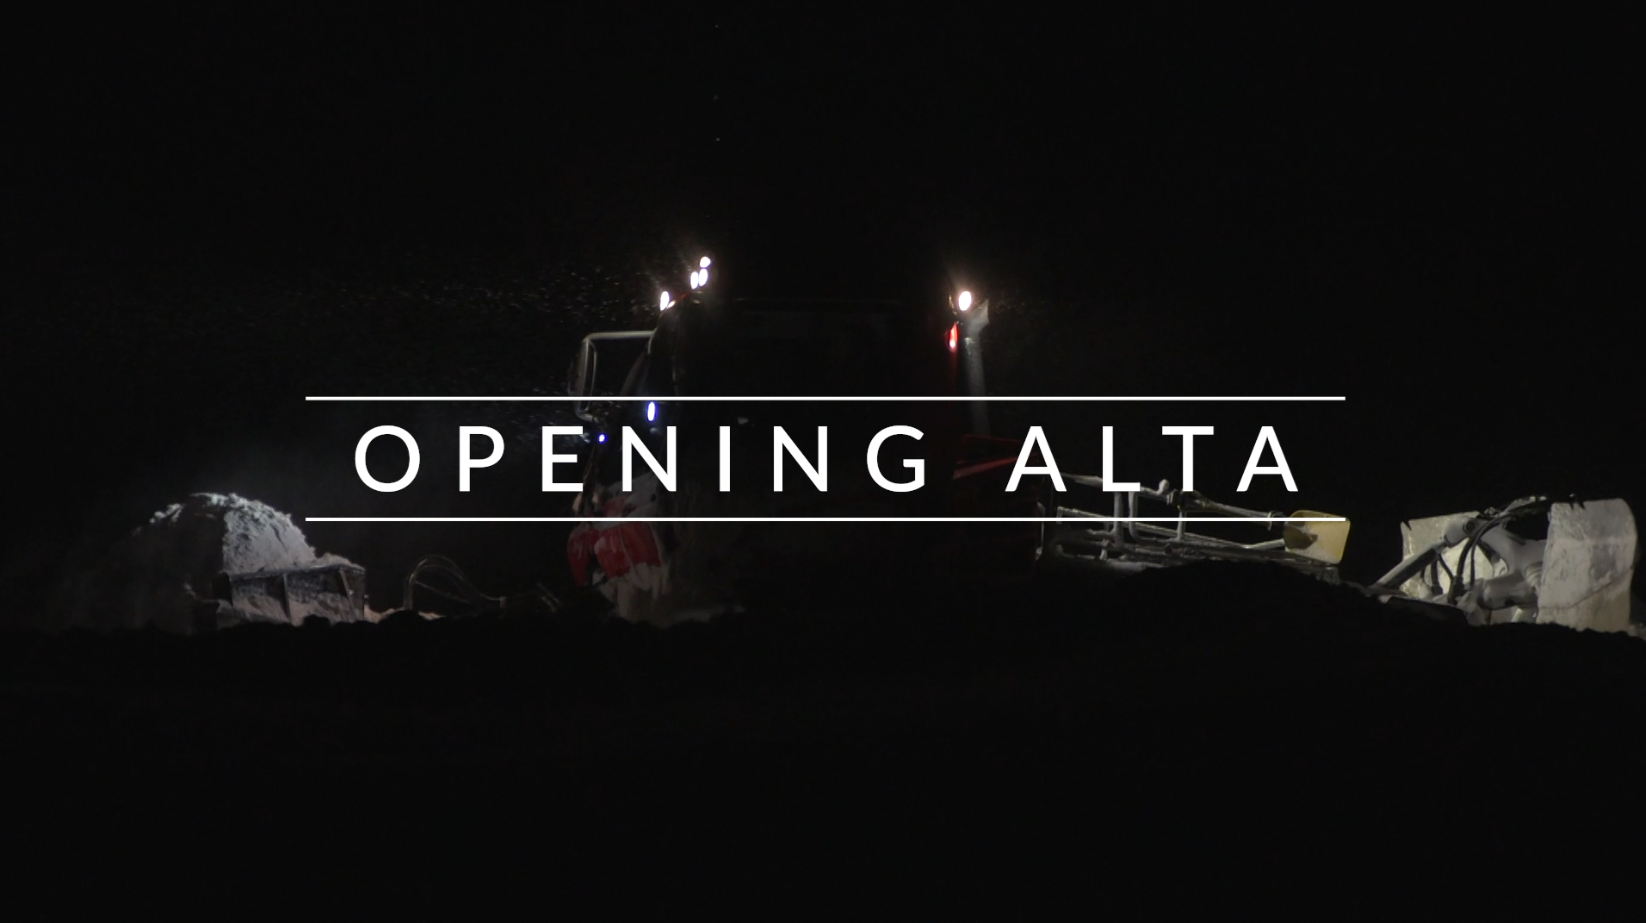 Opening Alta video